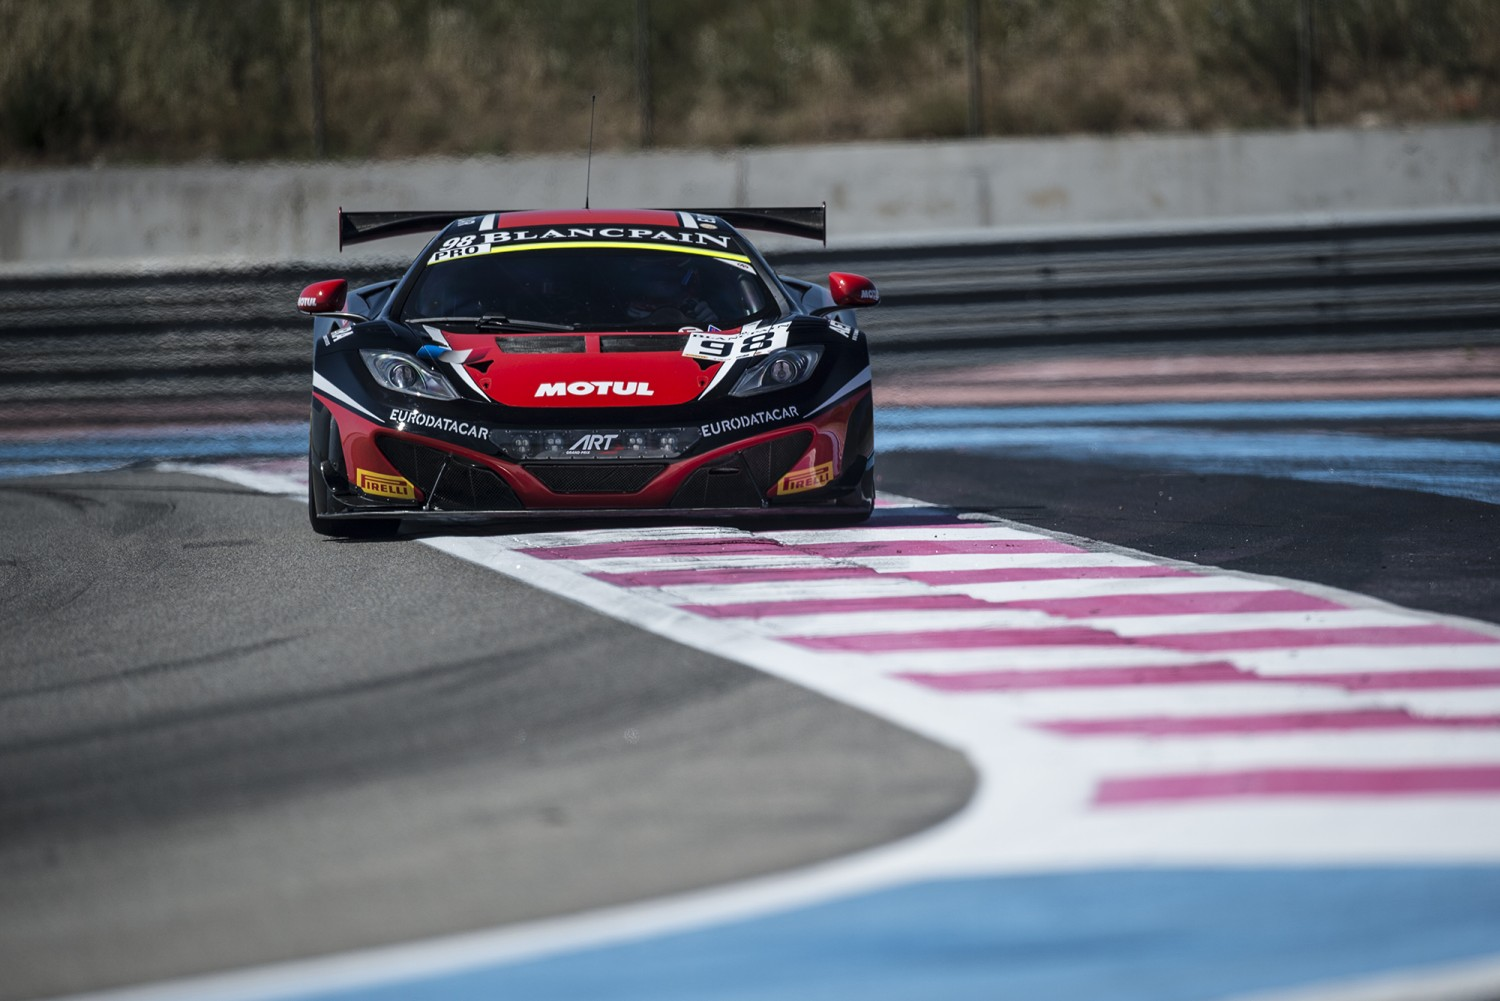 Paul Ricard Qualifying : Alvaro Parente takes second pole position of the season